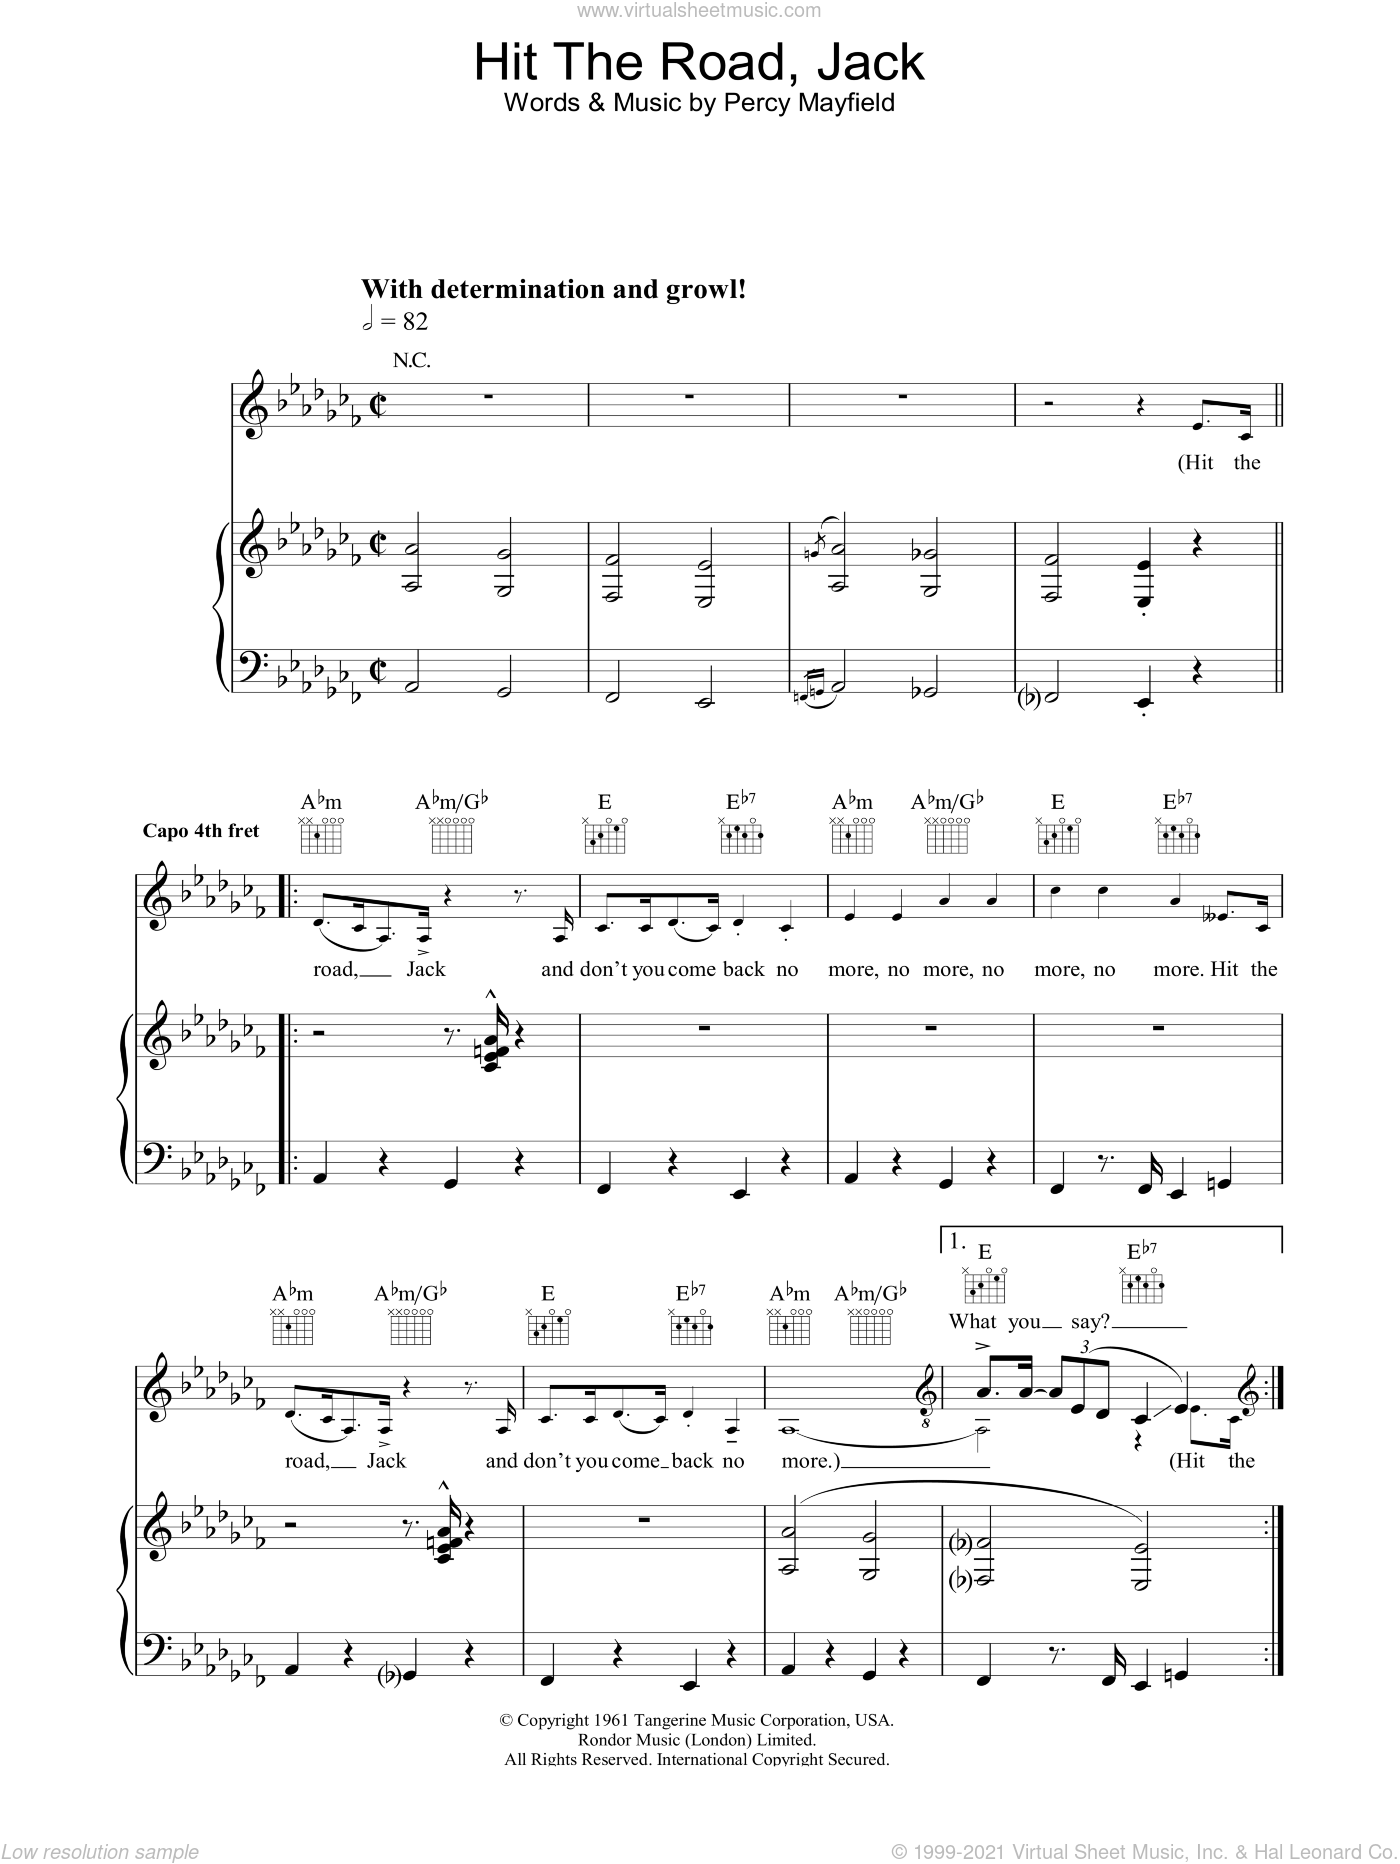 Hit The Road Jack sheet music for voice, piano or guitar by Percy Mayfield